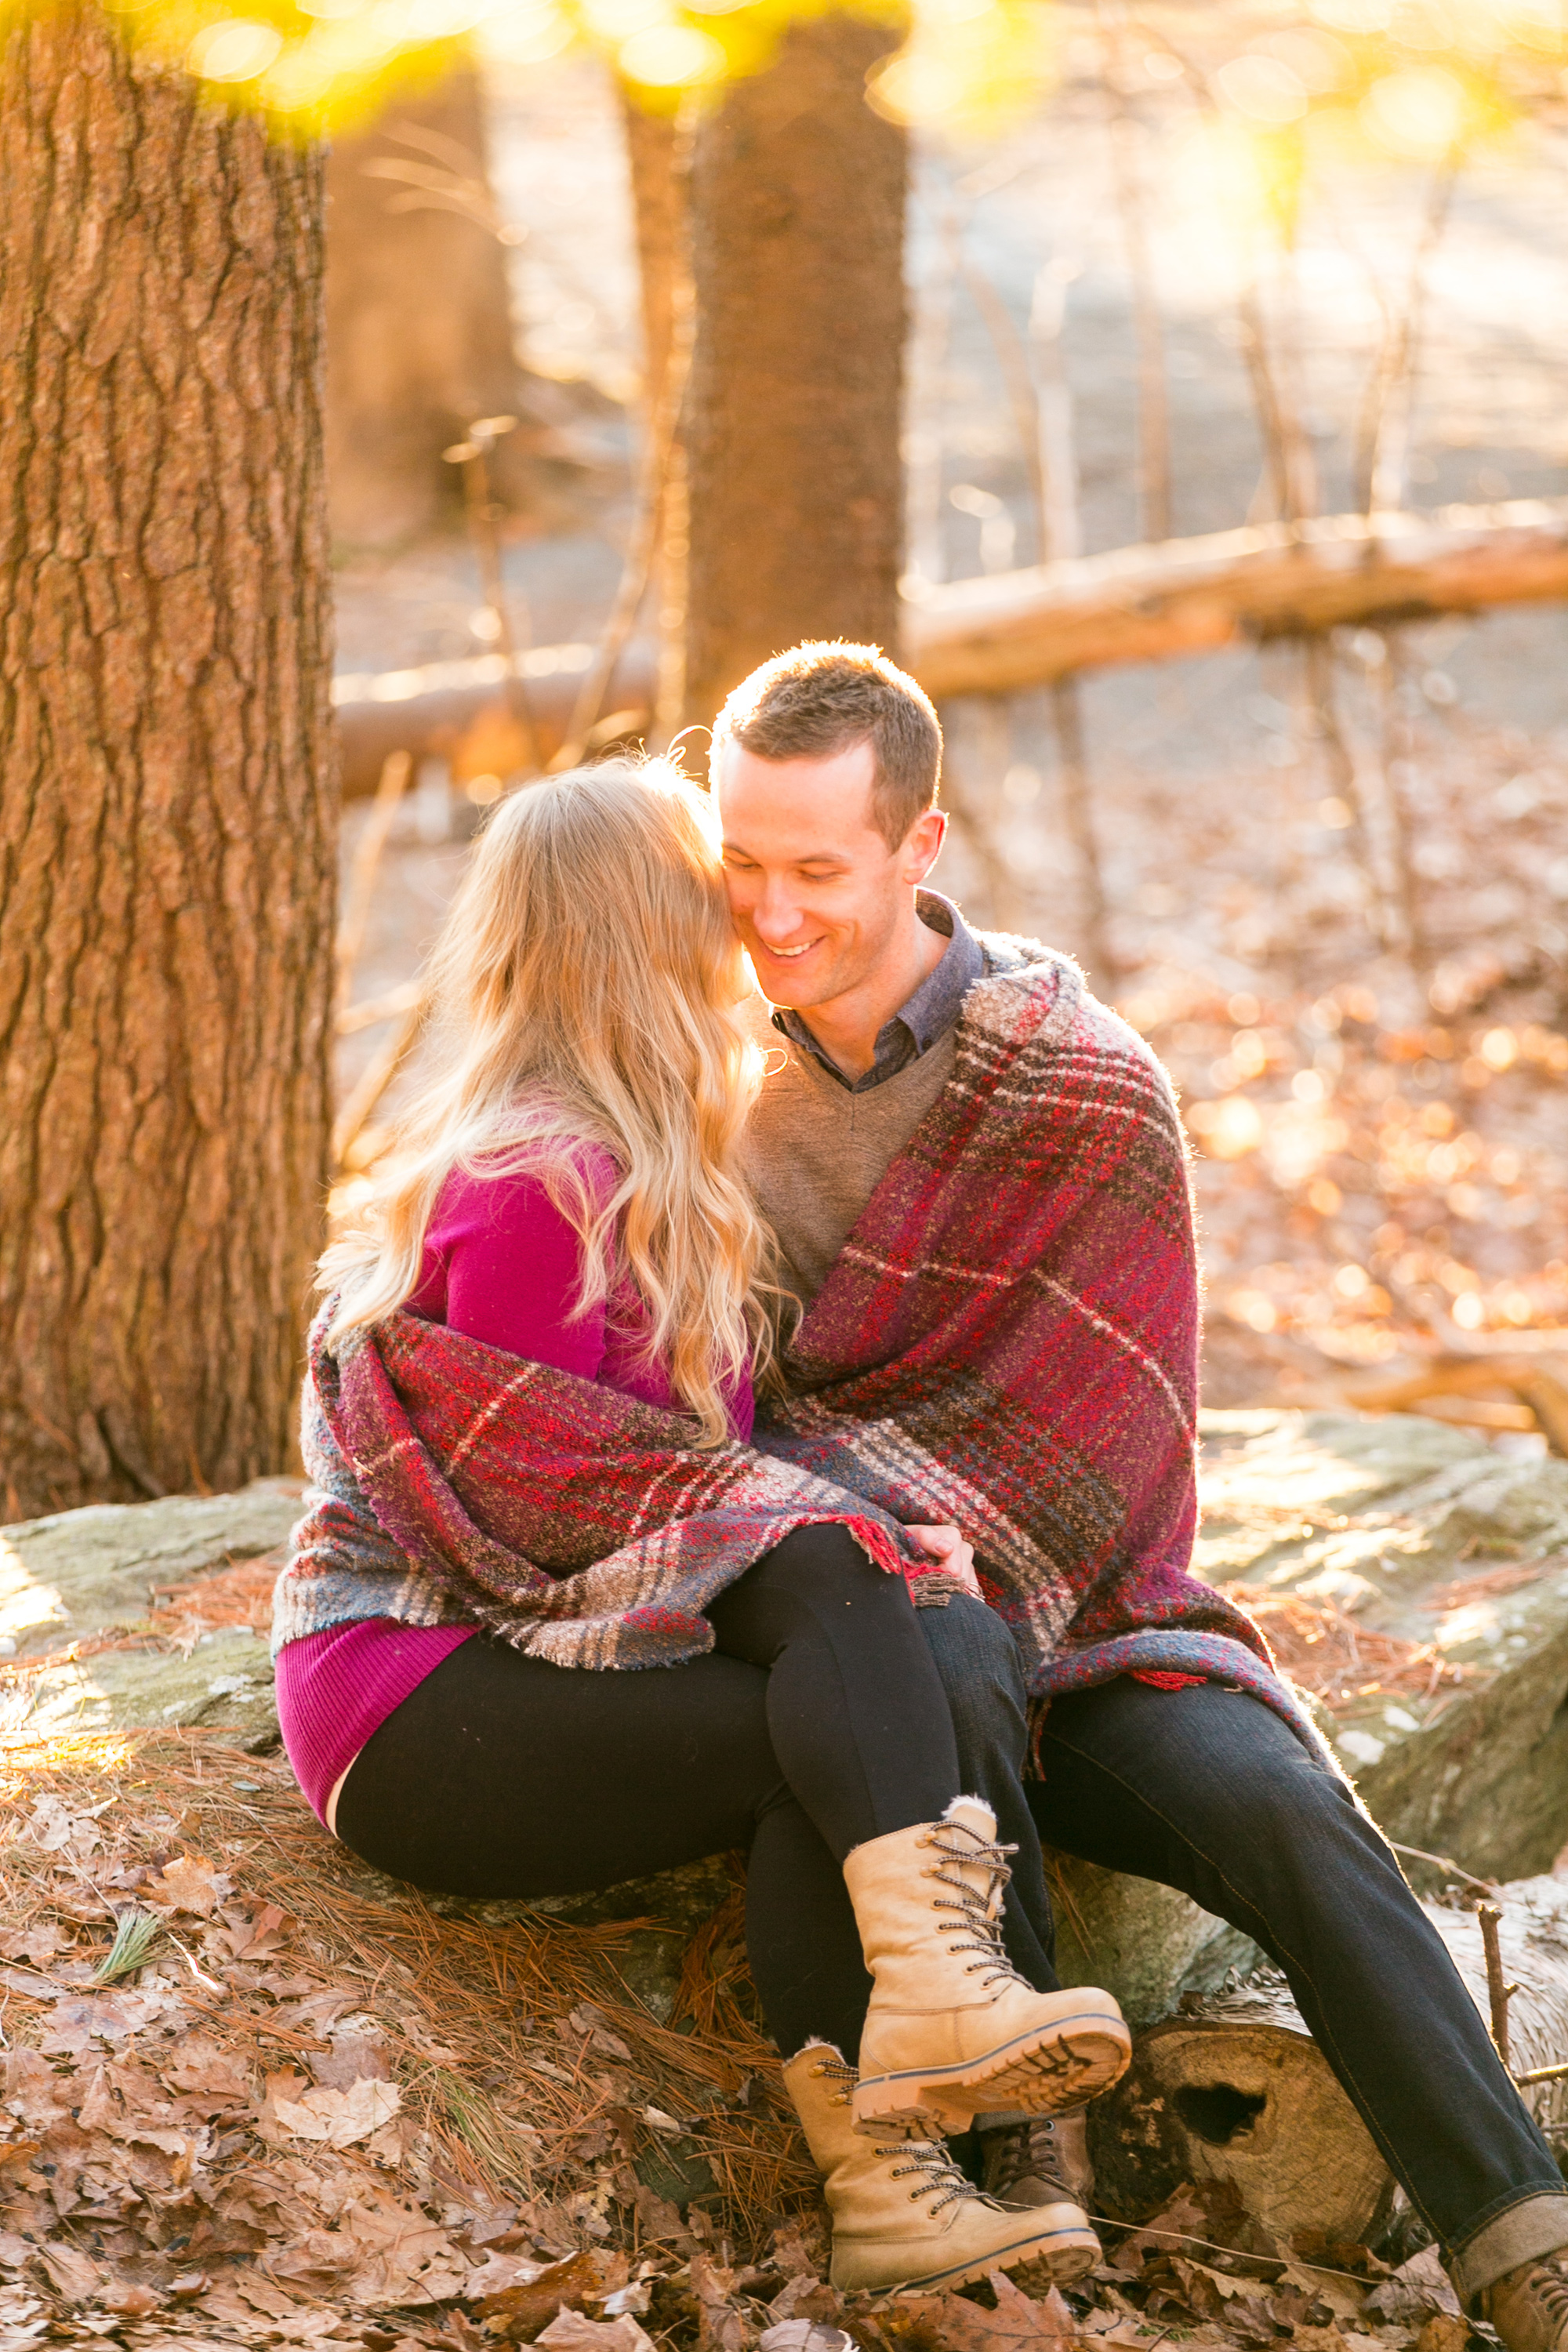 815-halifax-engagement-photography.jpg